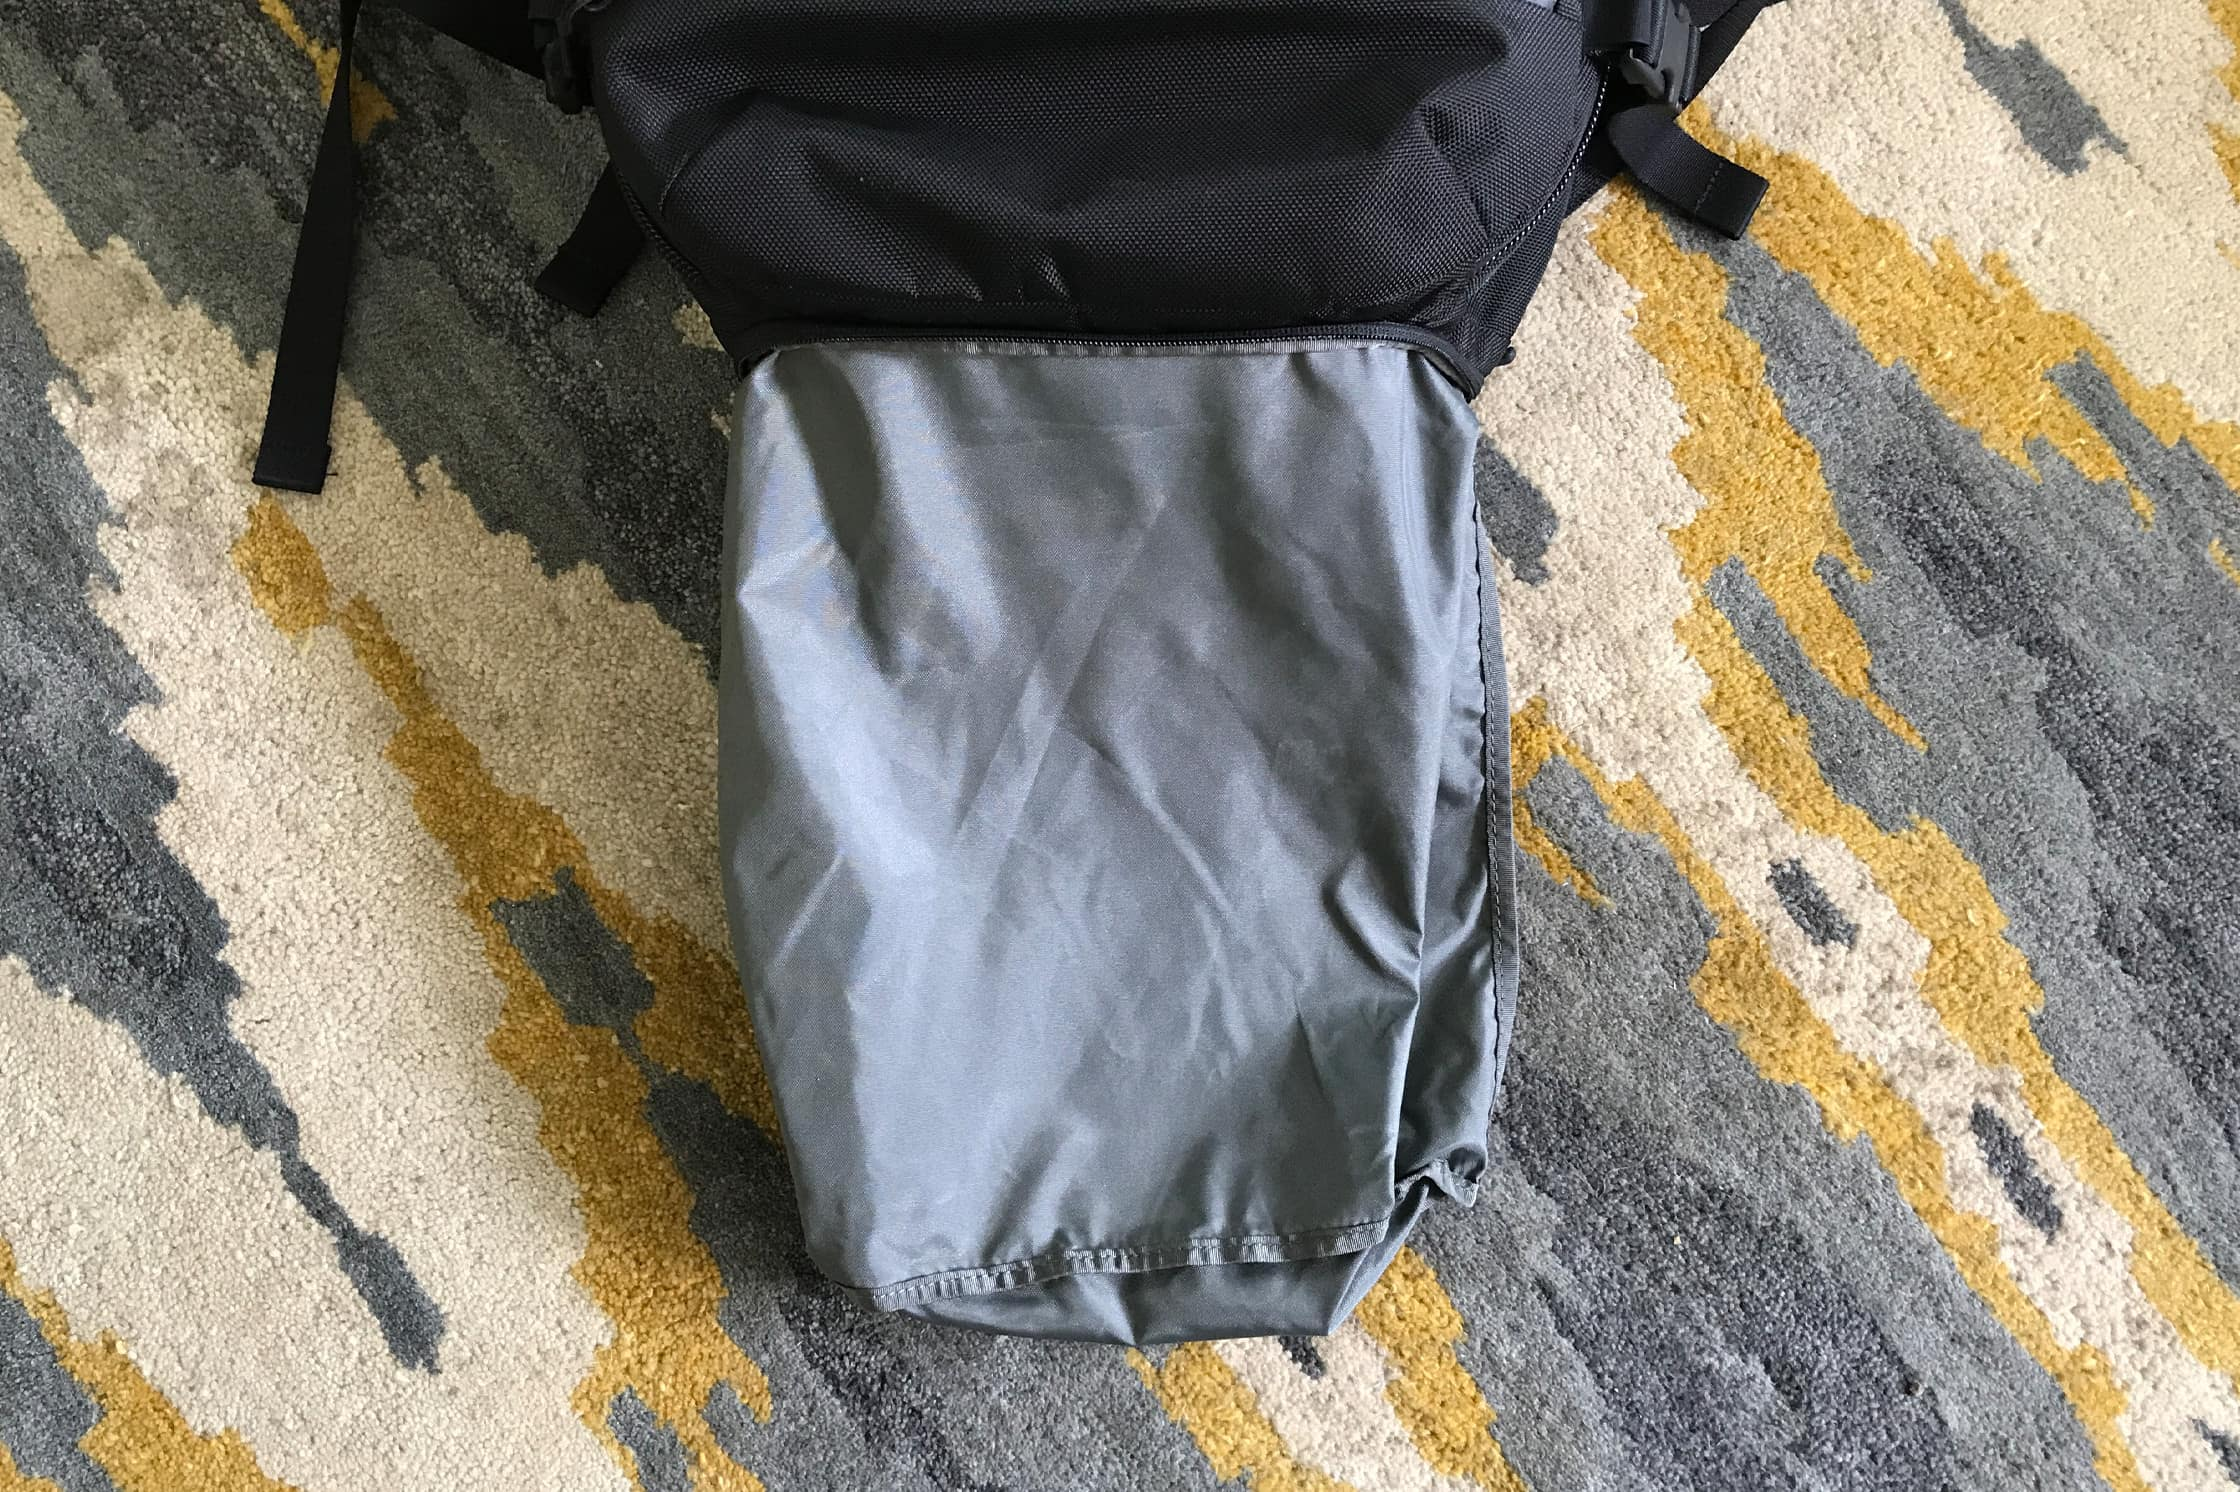 Aer Travel Pack Shoe Pocket Folded Out